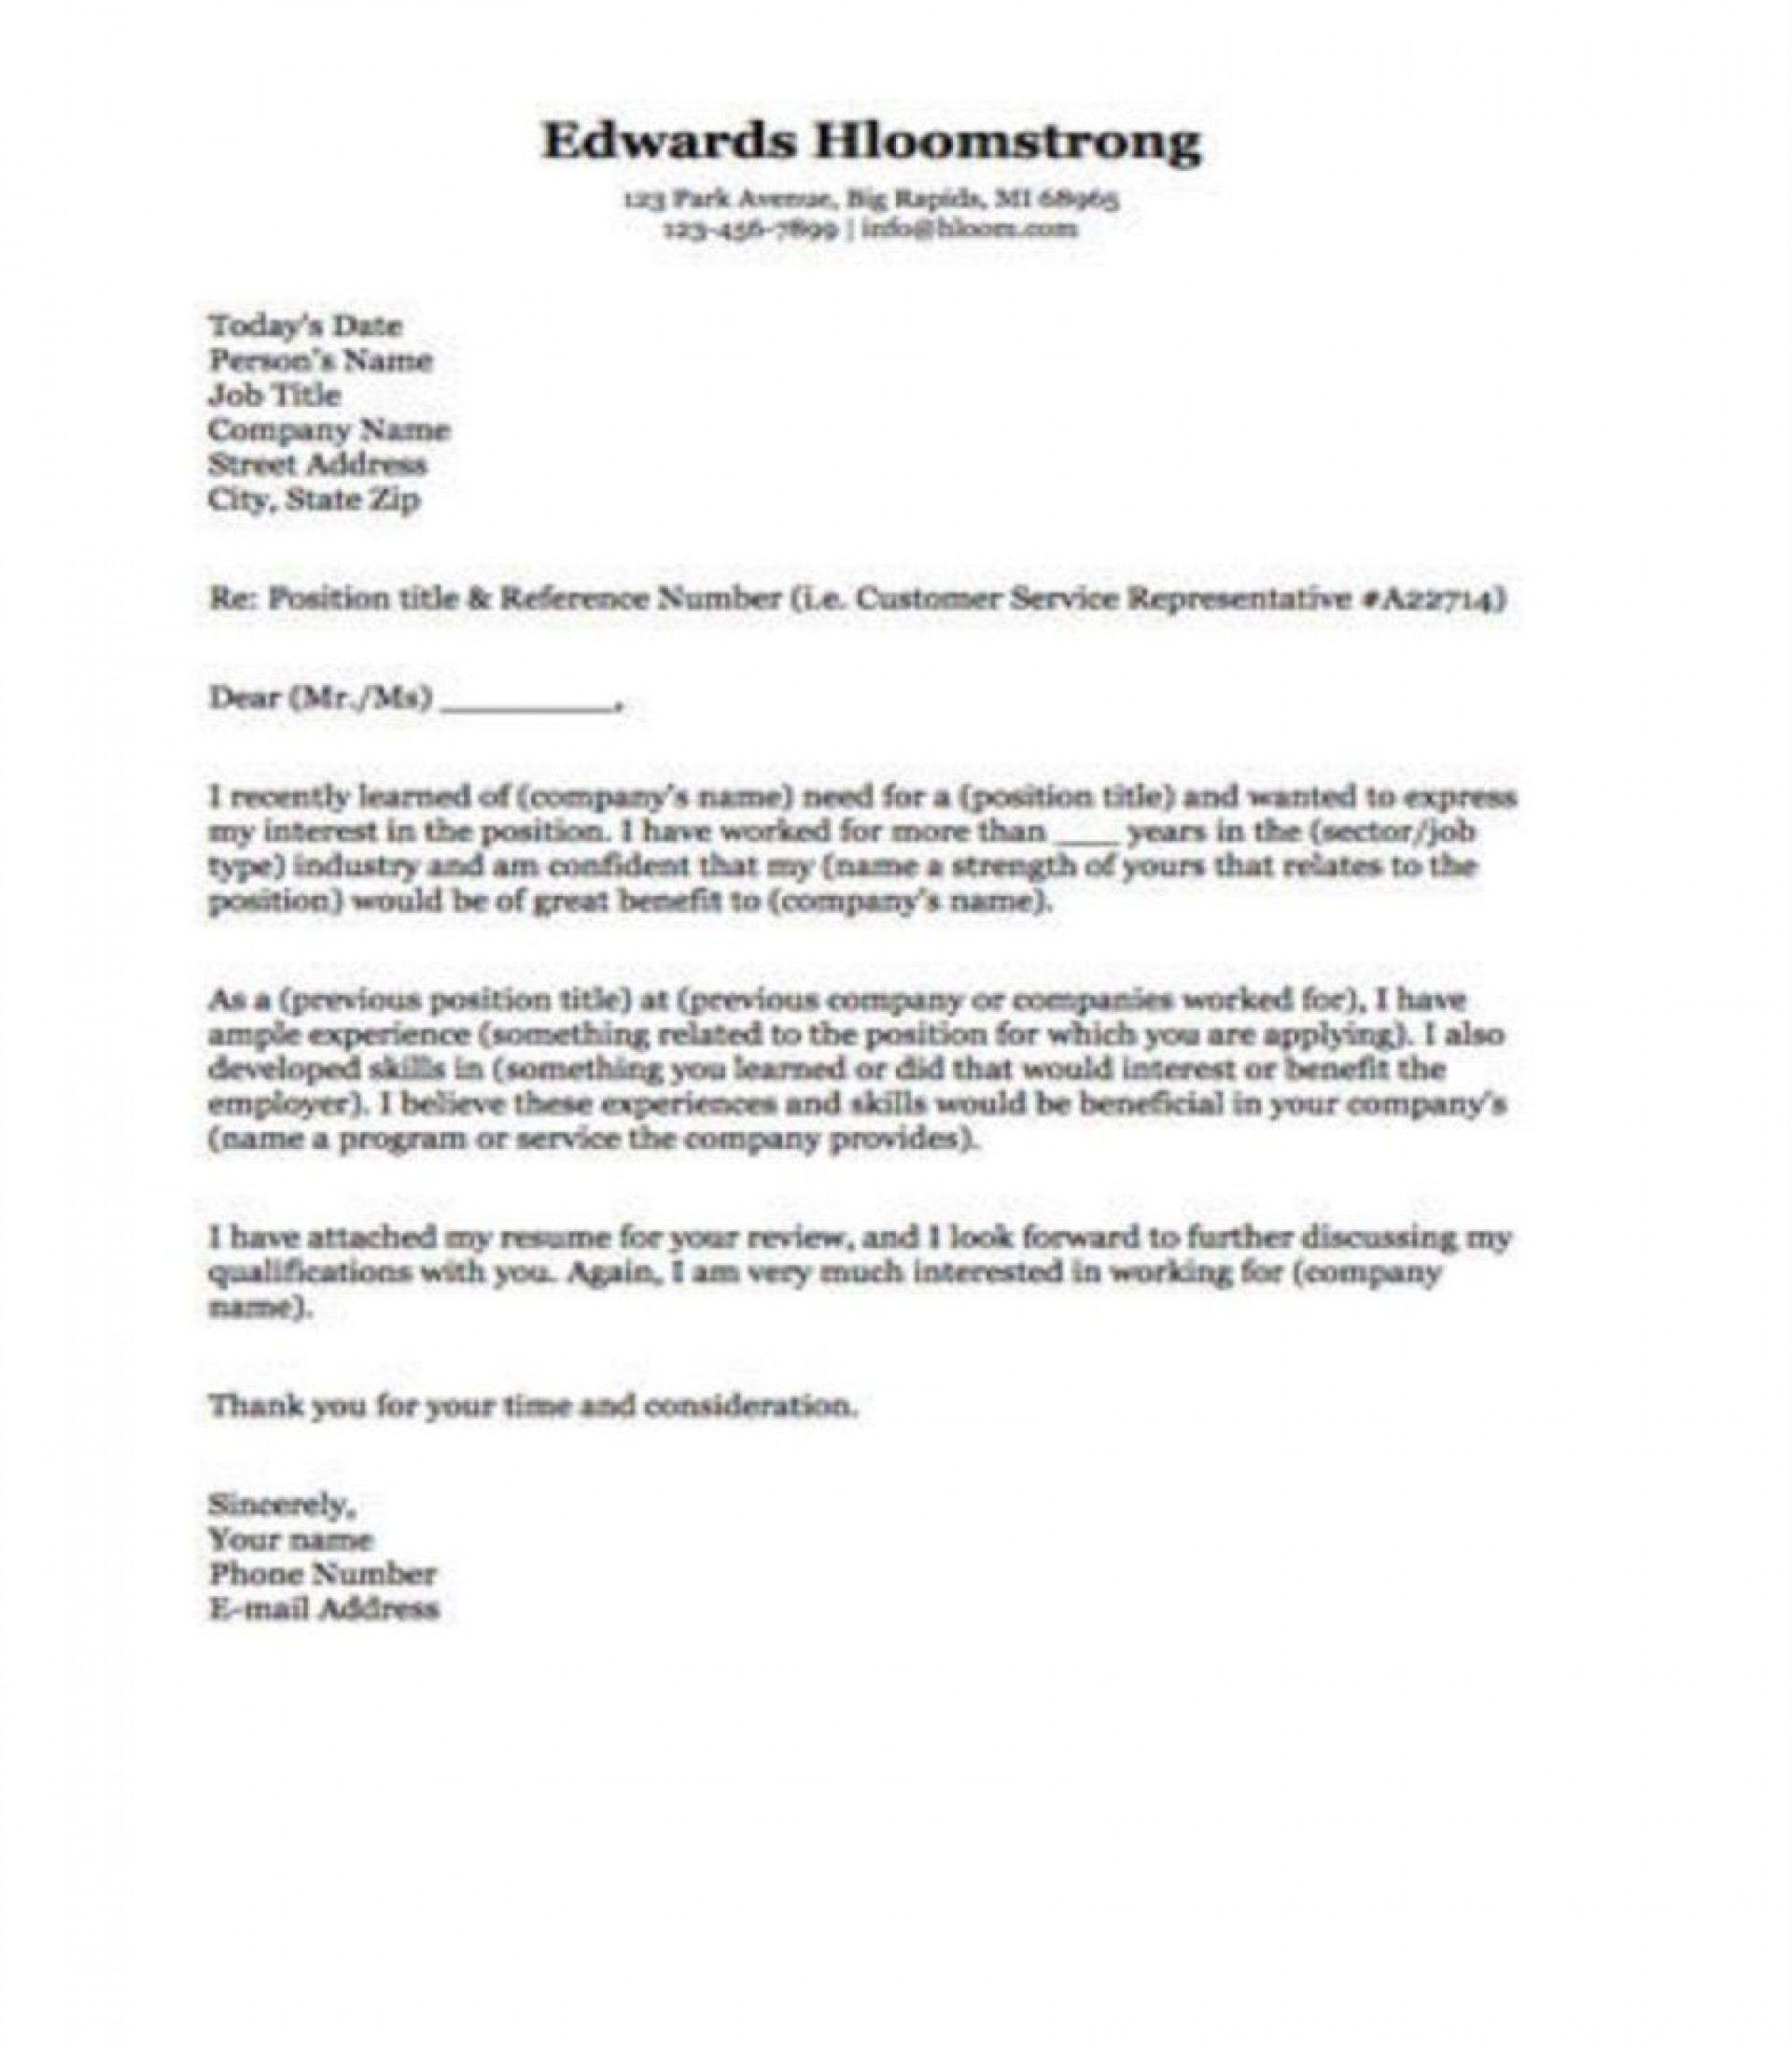 009 Frightening Microsoft Cover Letter Template 2020 High Definition 1920